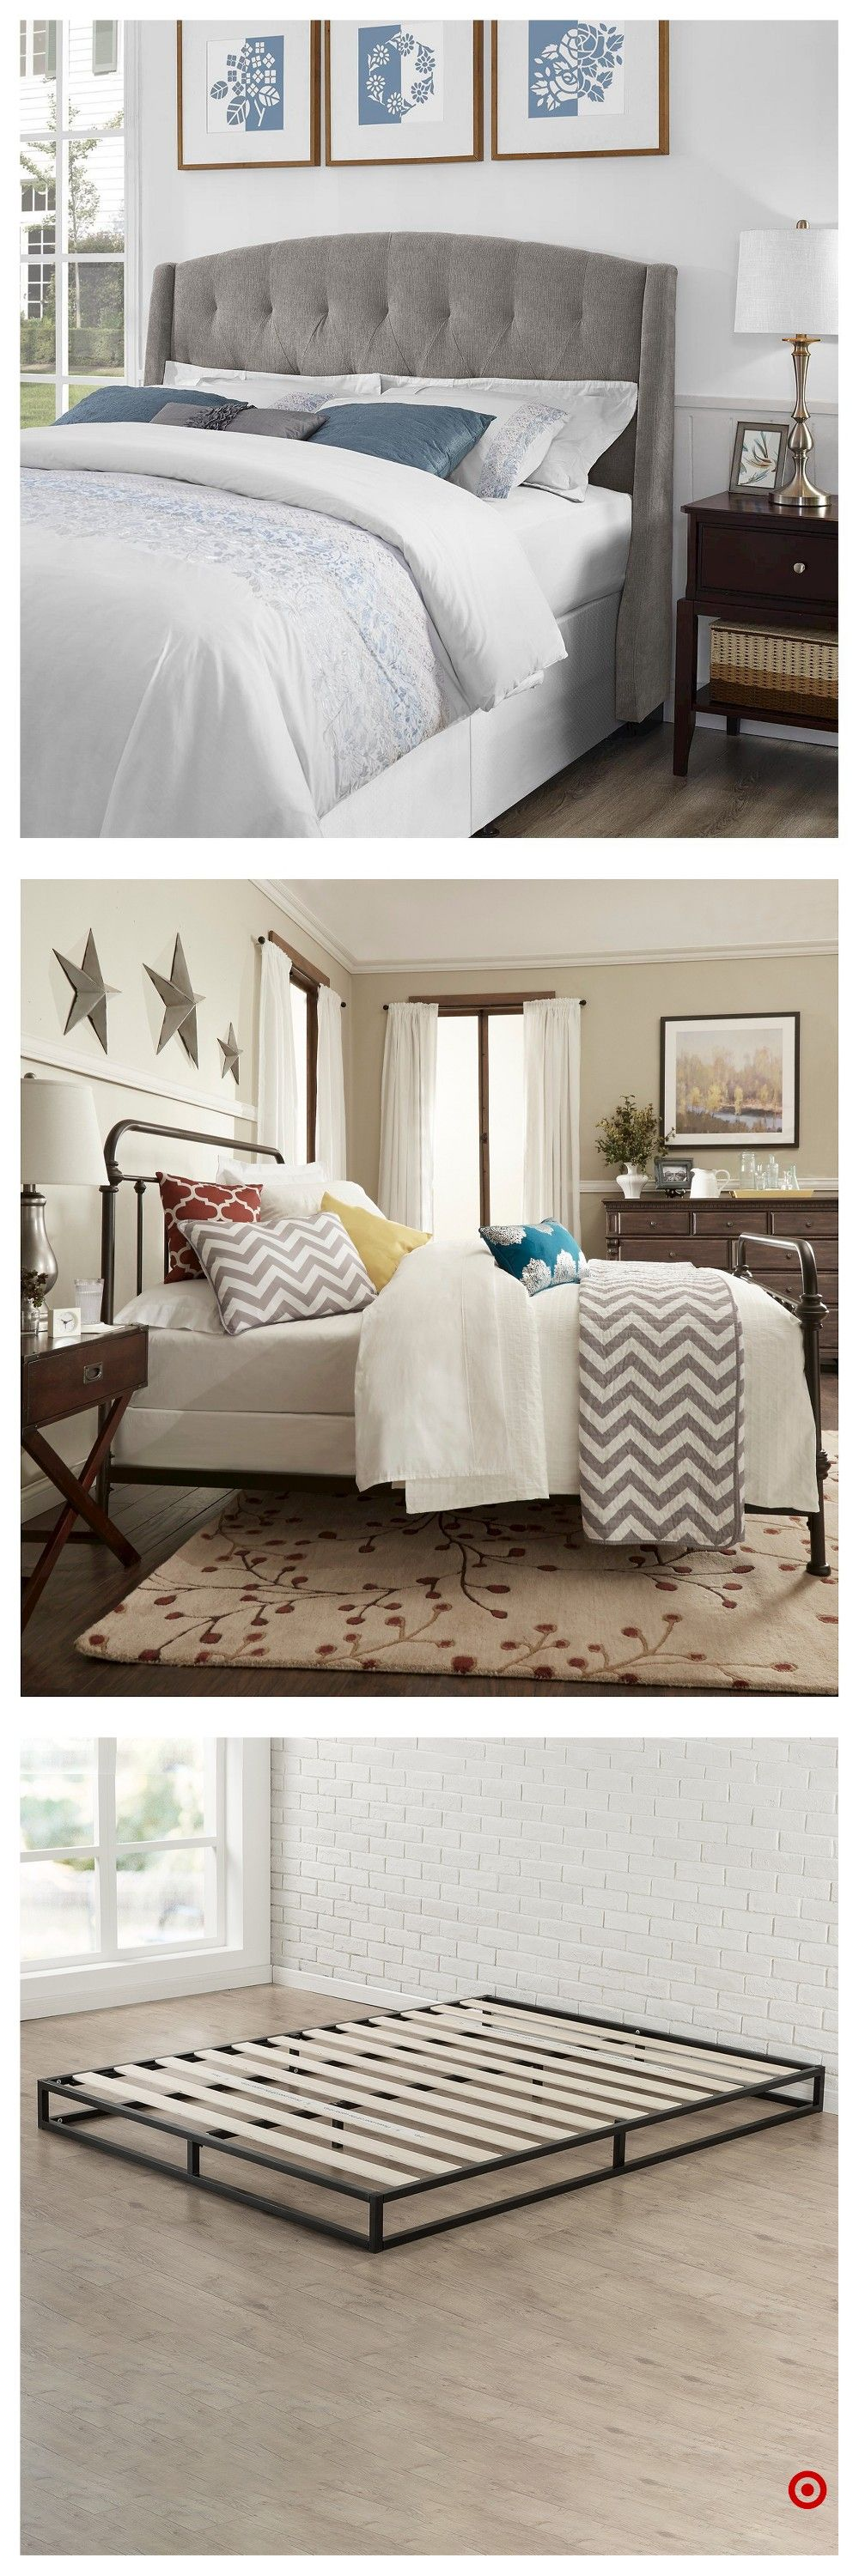 Free Room Design: Shop Target For Panel Bed You Will Love At Great Low